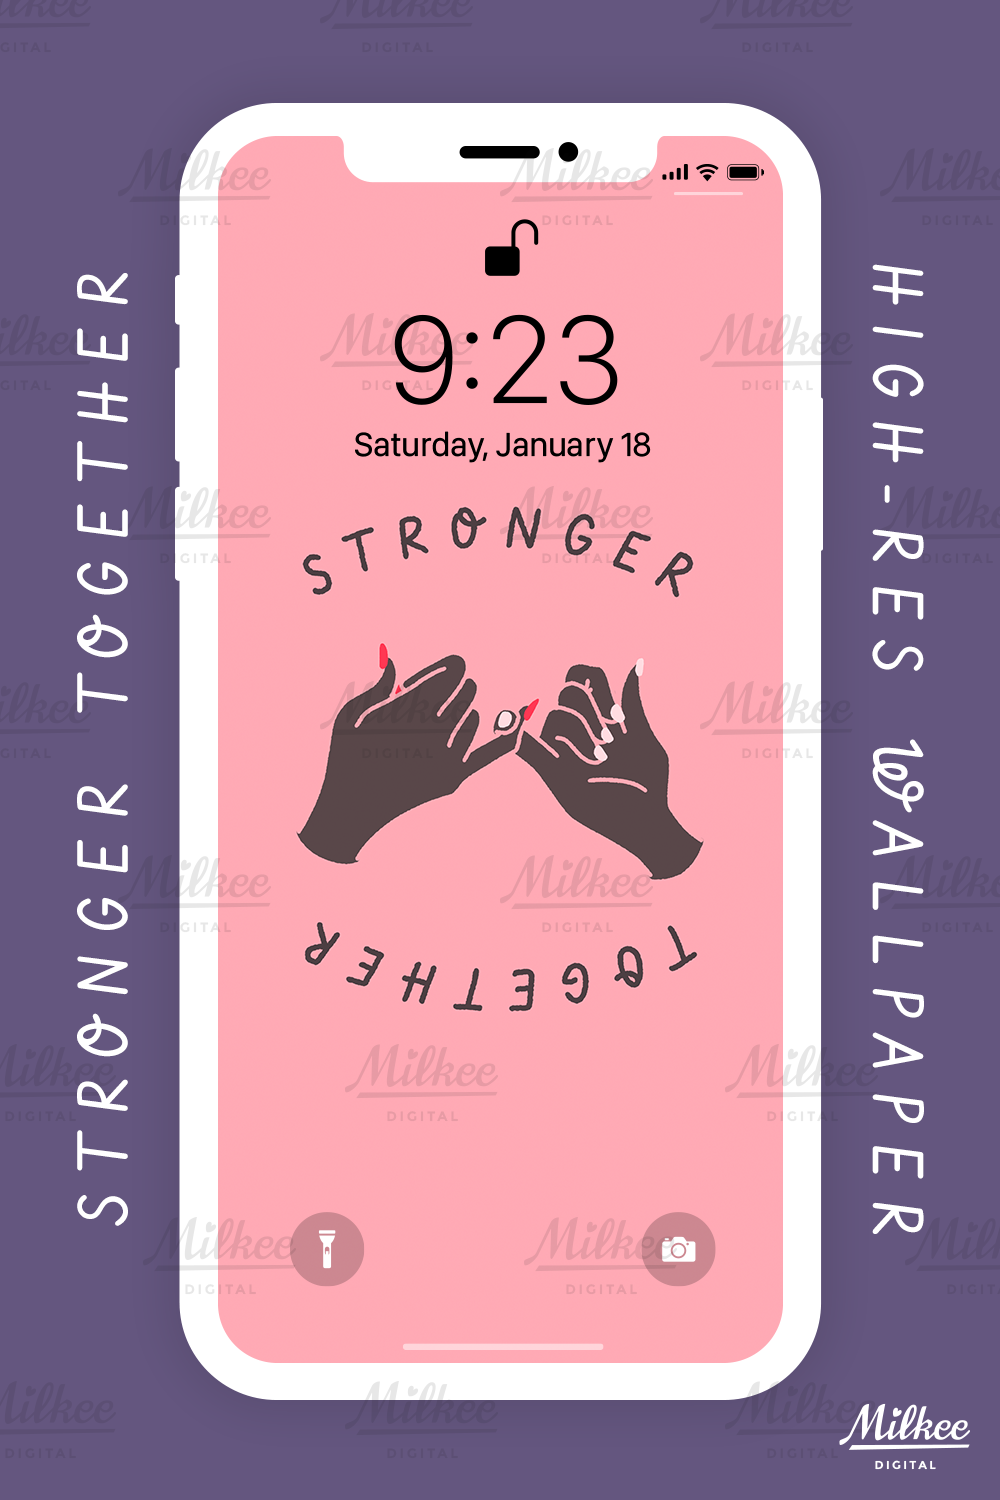 Phone Wallpaper Stronger Together Melanin Ed Affordable Minimalistic Cute Wallpaper For Iphone Samsung Etc Wallpaper Iphone Cute Cute Wallpapers Phone